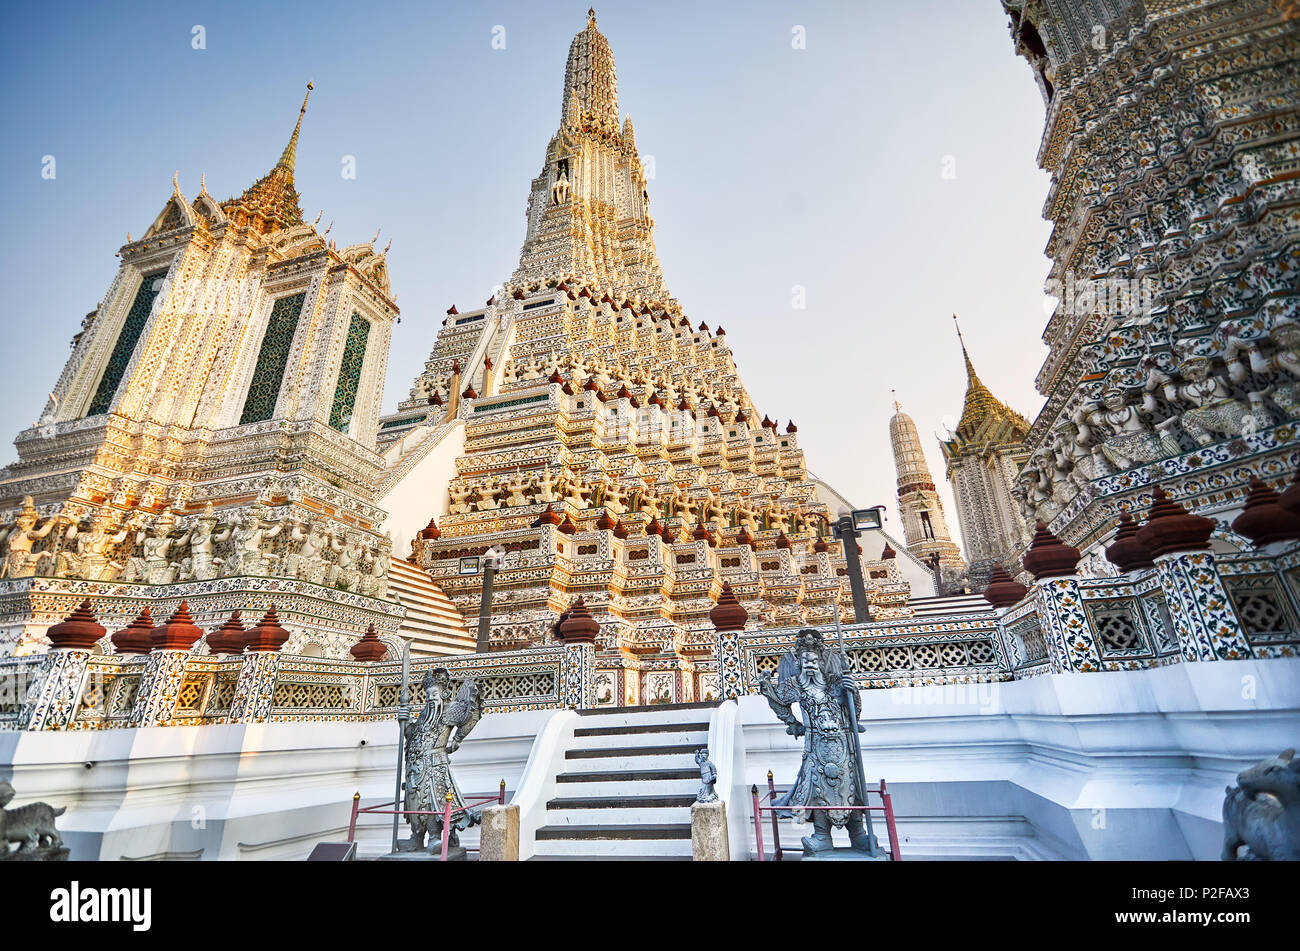 Beautiful Phrang in Wat Arun temple at sunset in Bangkok, Thailand. - Stock Image